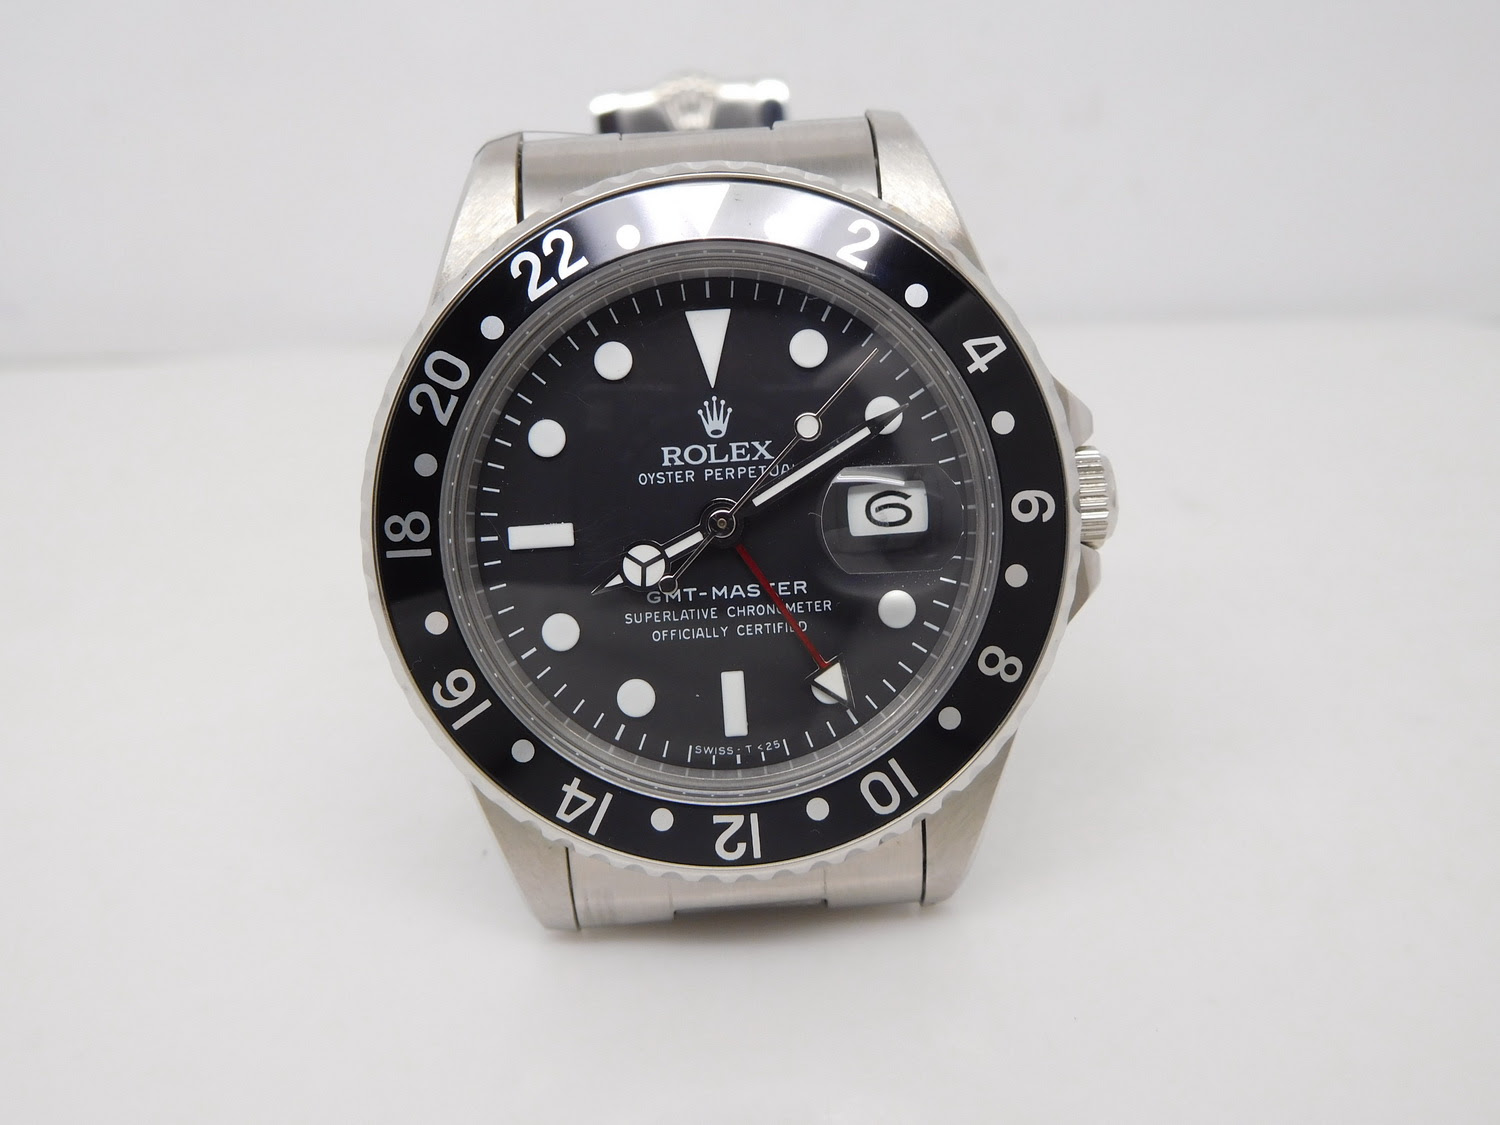 BP Factory Replica Rolex GMT Master Vintage Watch